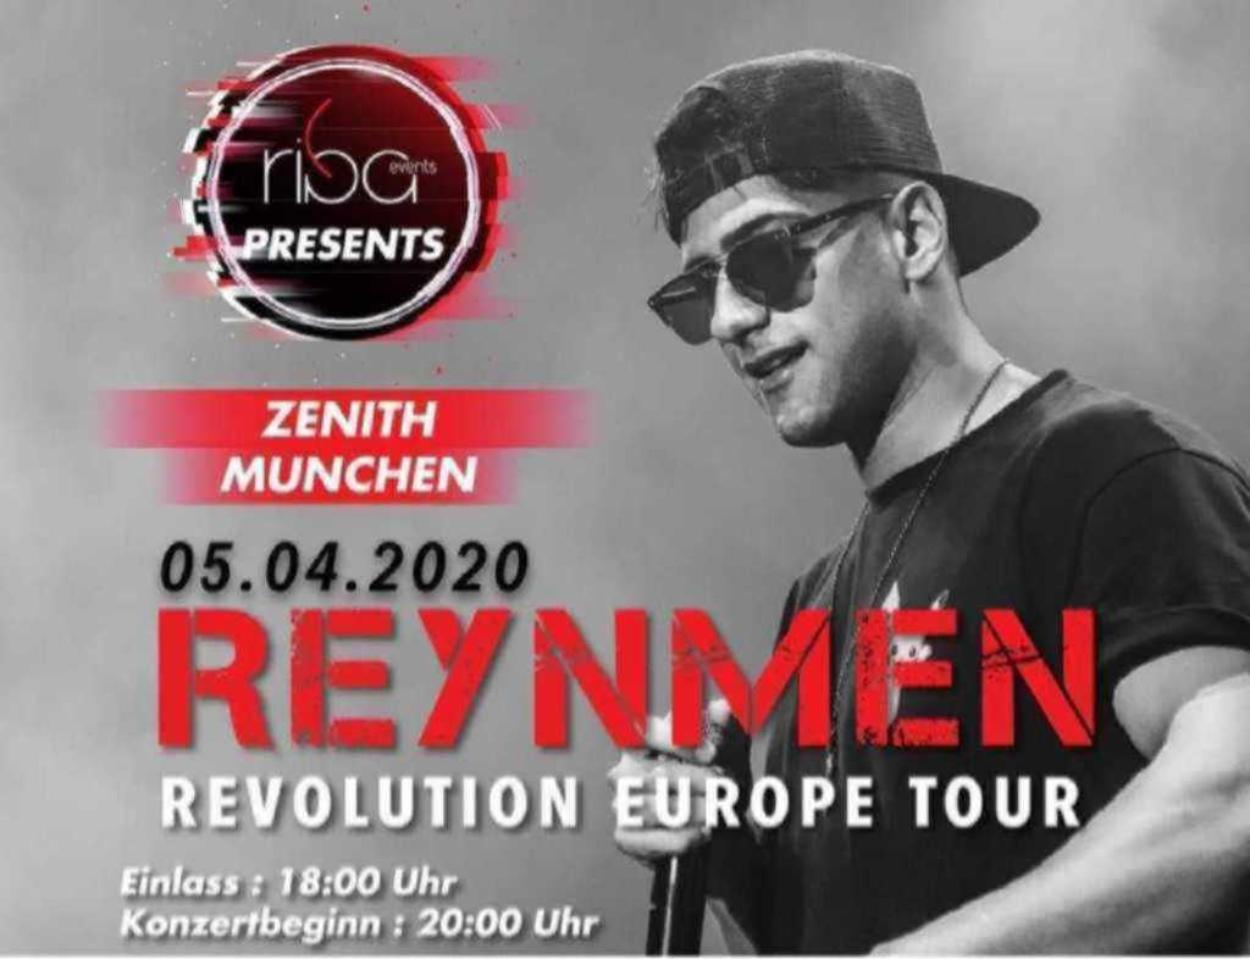 REYNMEN Revolution Europe Tour